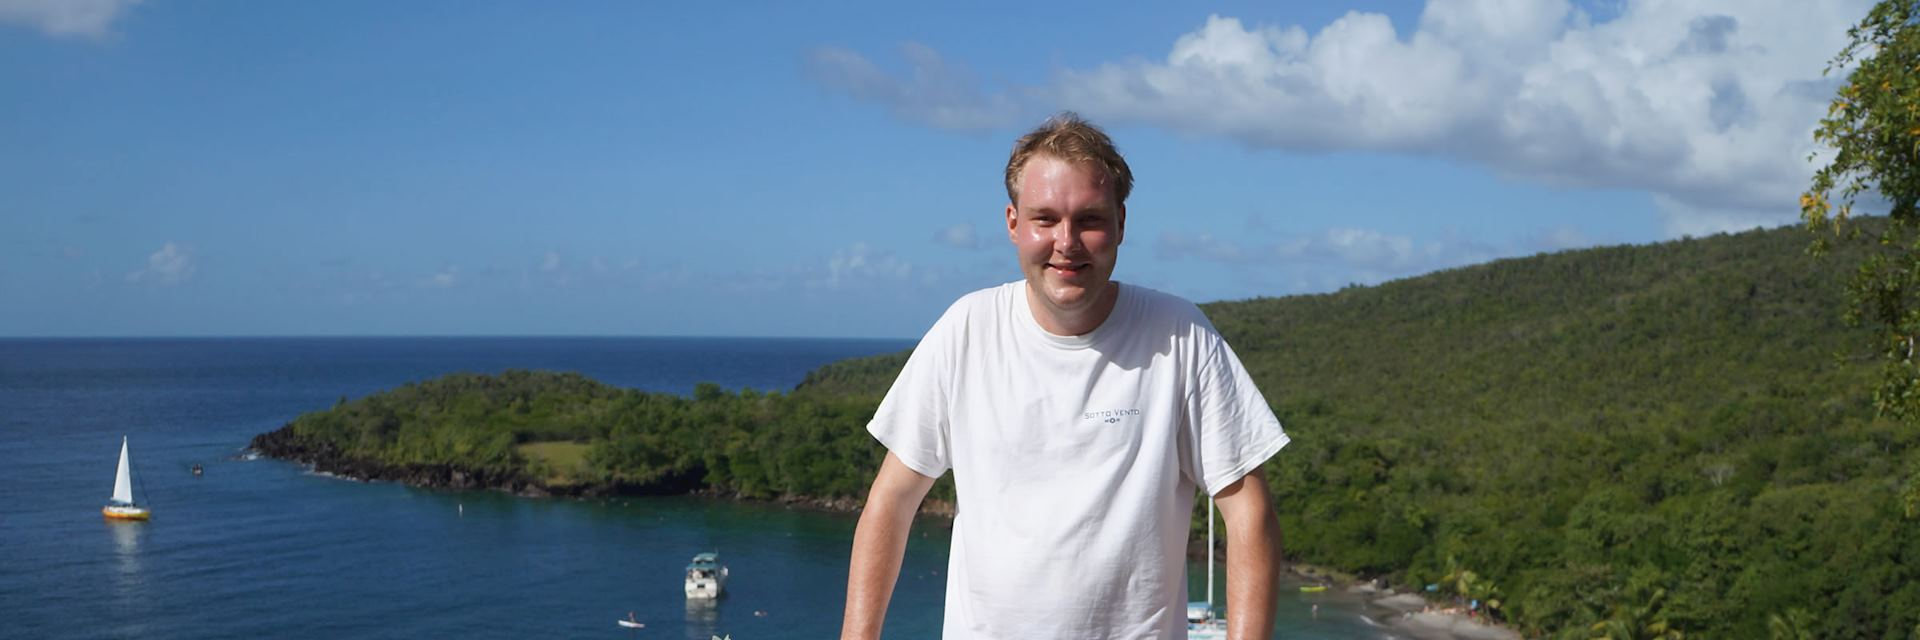 Ludo at Ti Kaye Resort and Spa, Saint Lucia